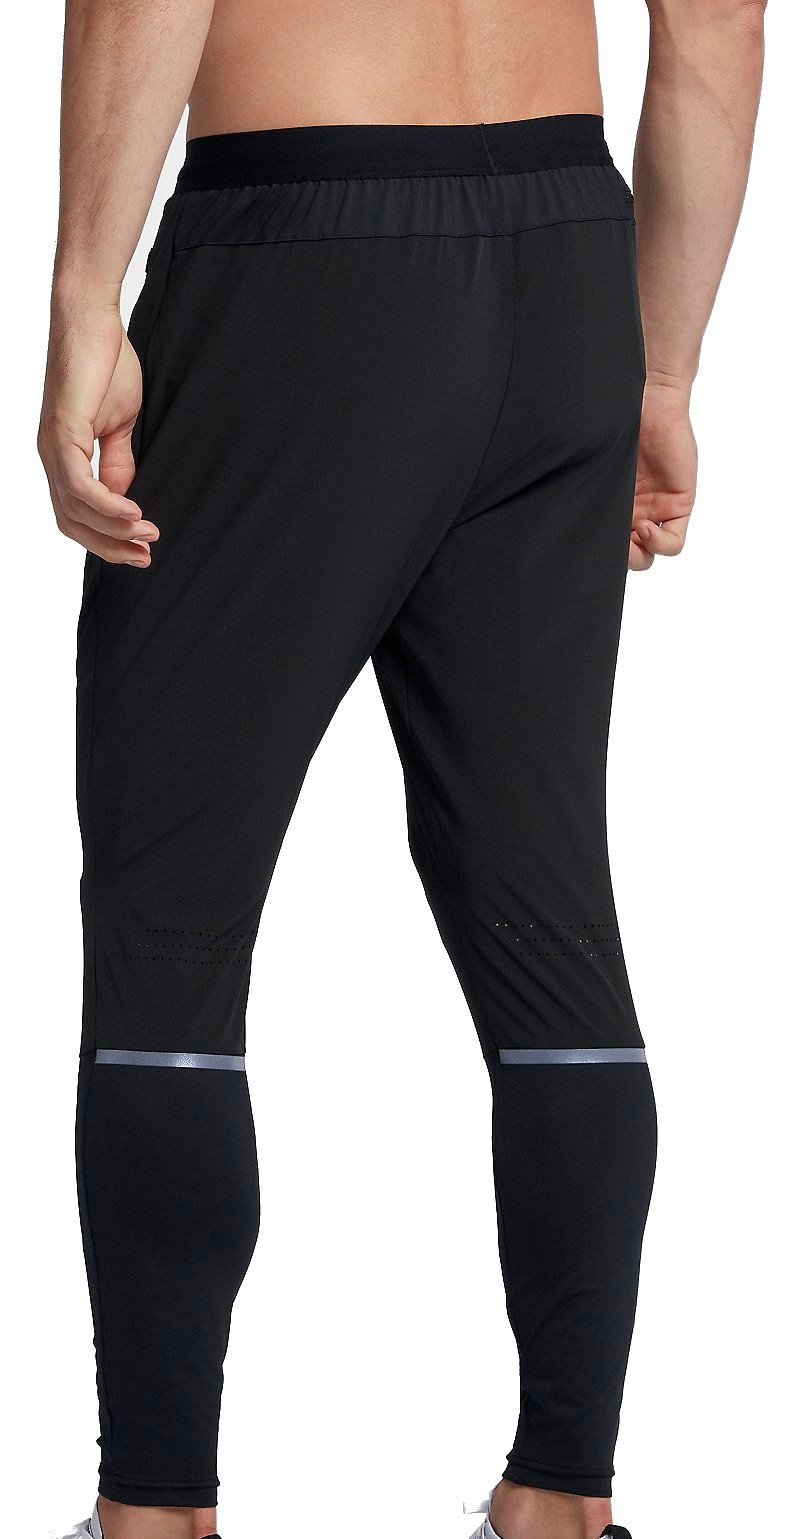 Puerto Reactor mientras  Pantalón Nike M NK SWIFT RUN PANT - Top4Running.es